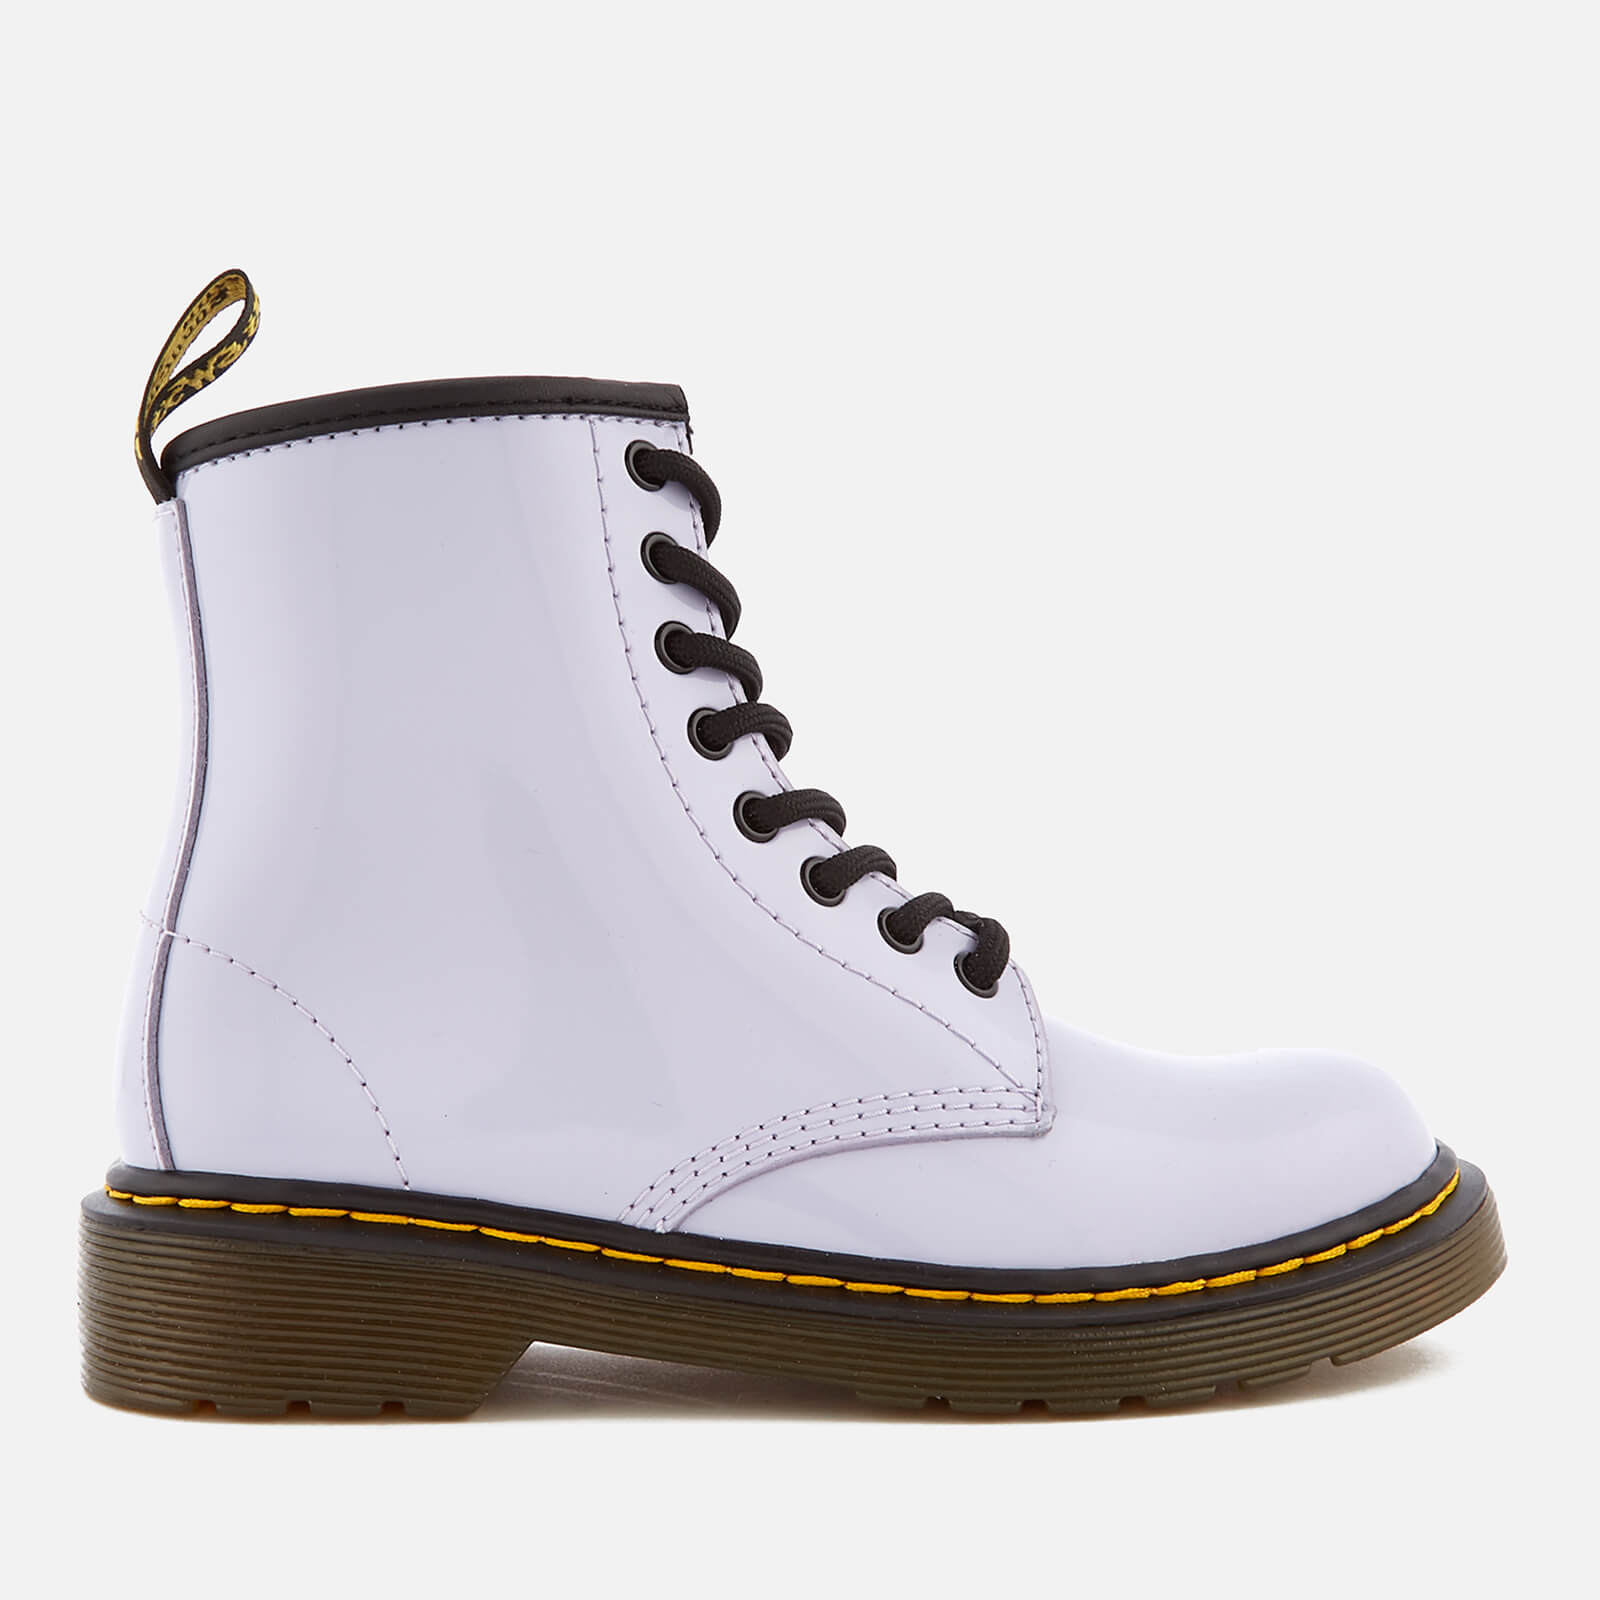 a3c6651a3fb Dr. Martens Kids' Delaney Patent Lamper Leather 8-Eye Lace Up Boots -  Purple Heather